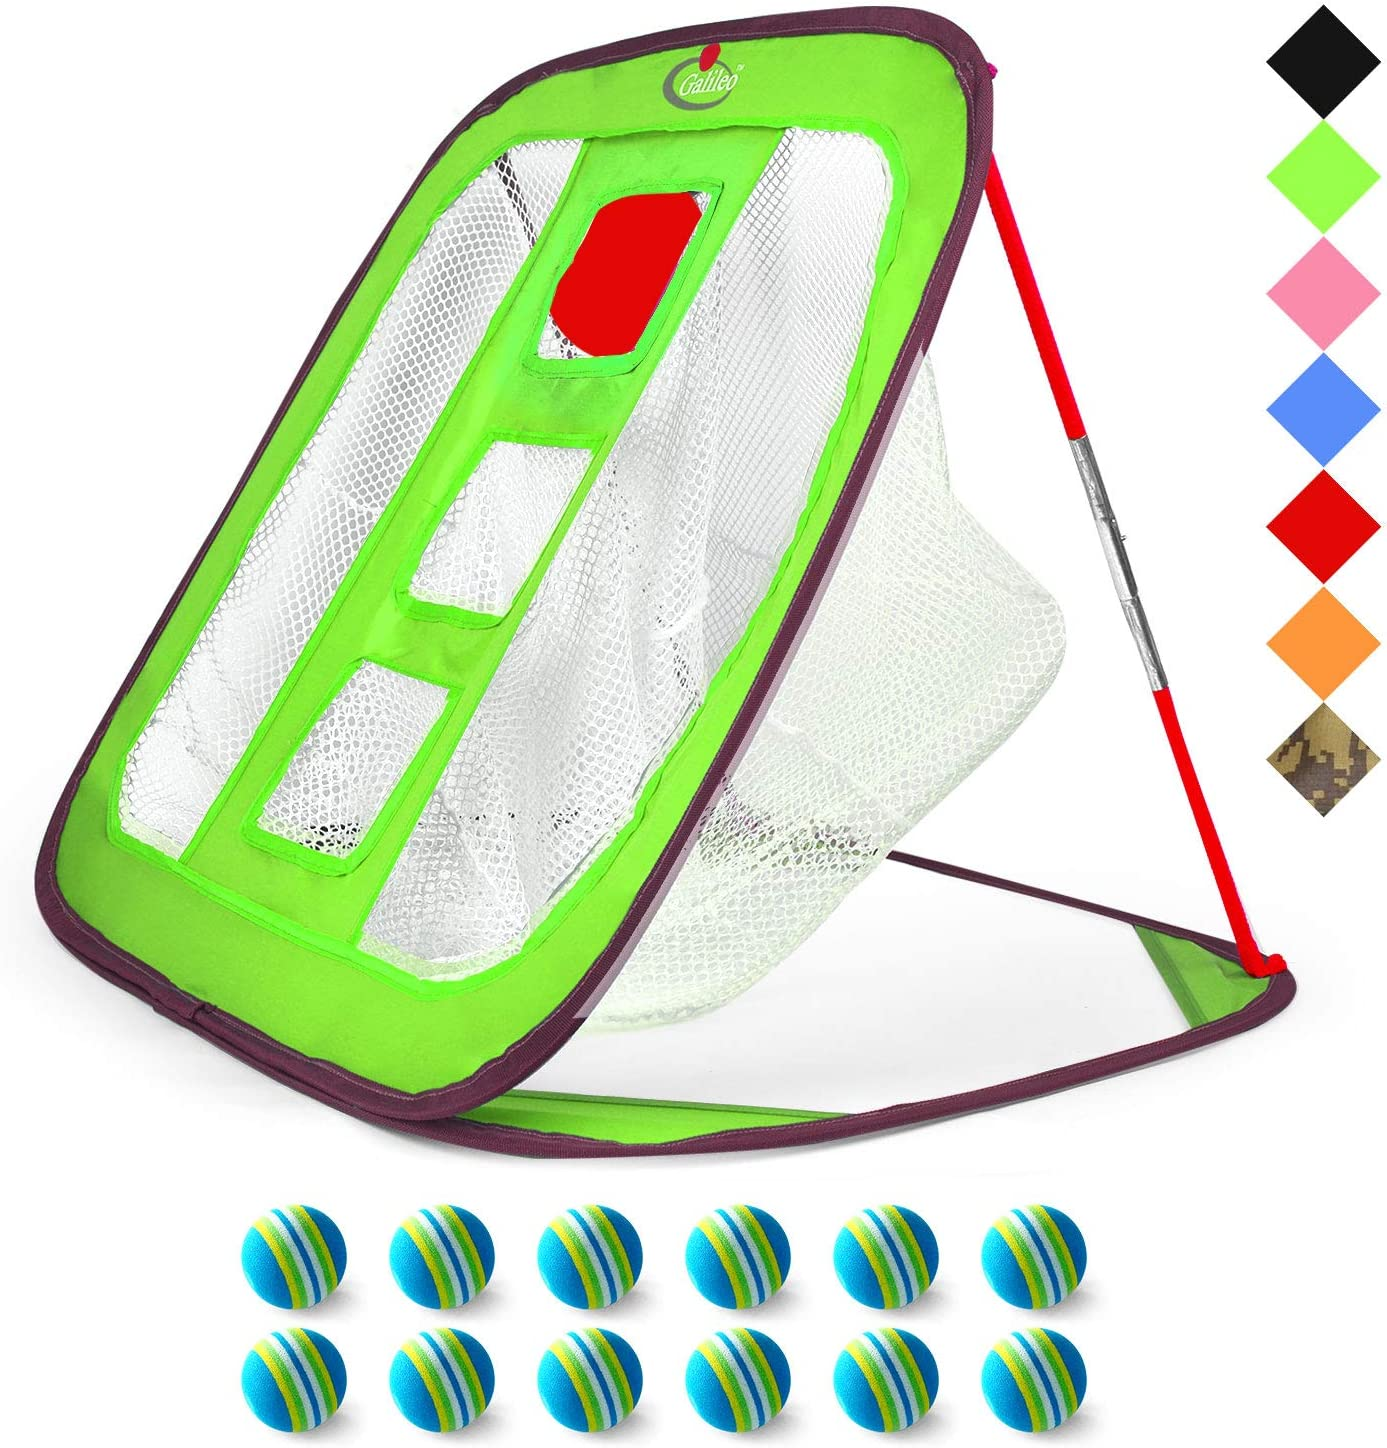 Galileo Pop Up Golf Chipping Net Practice Nets Training Square Chipping Golf Hitting Aid 3-Target Hole with Foam Training Balls 12pack